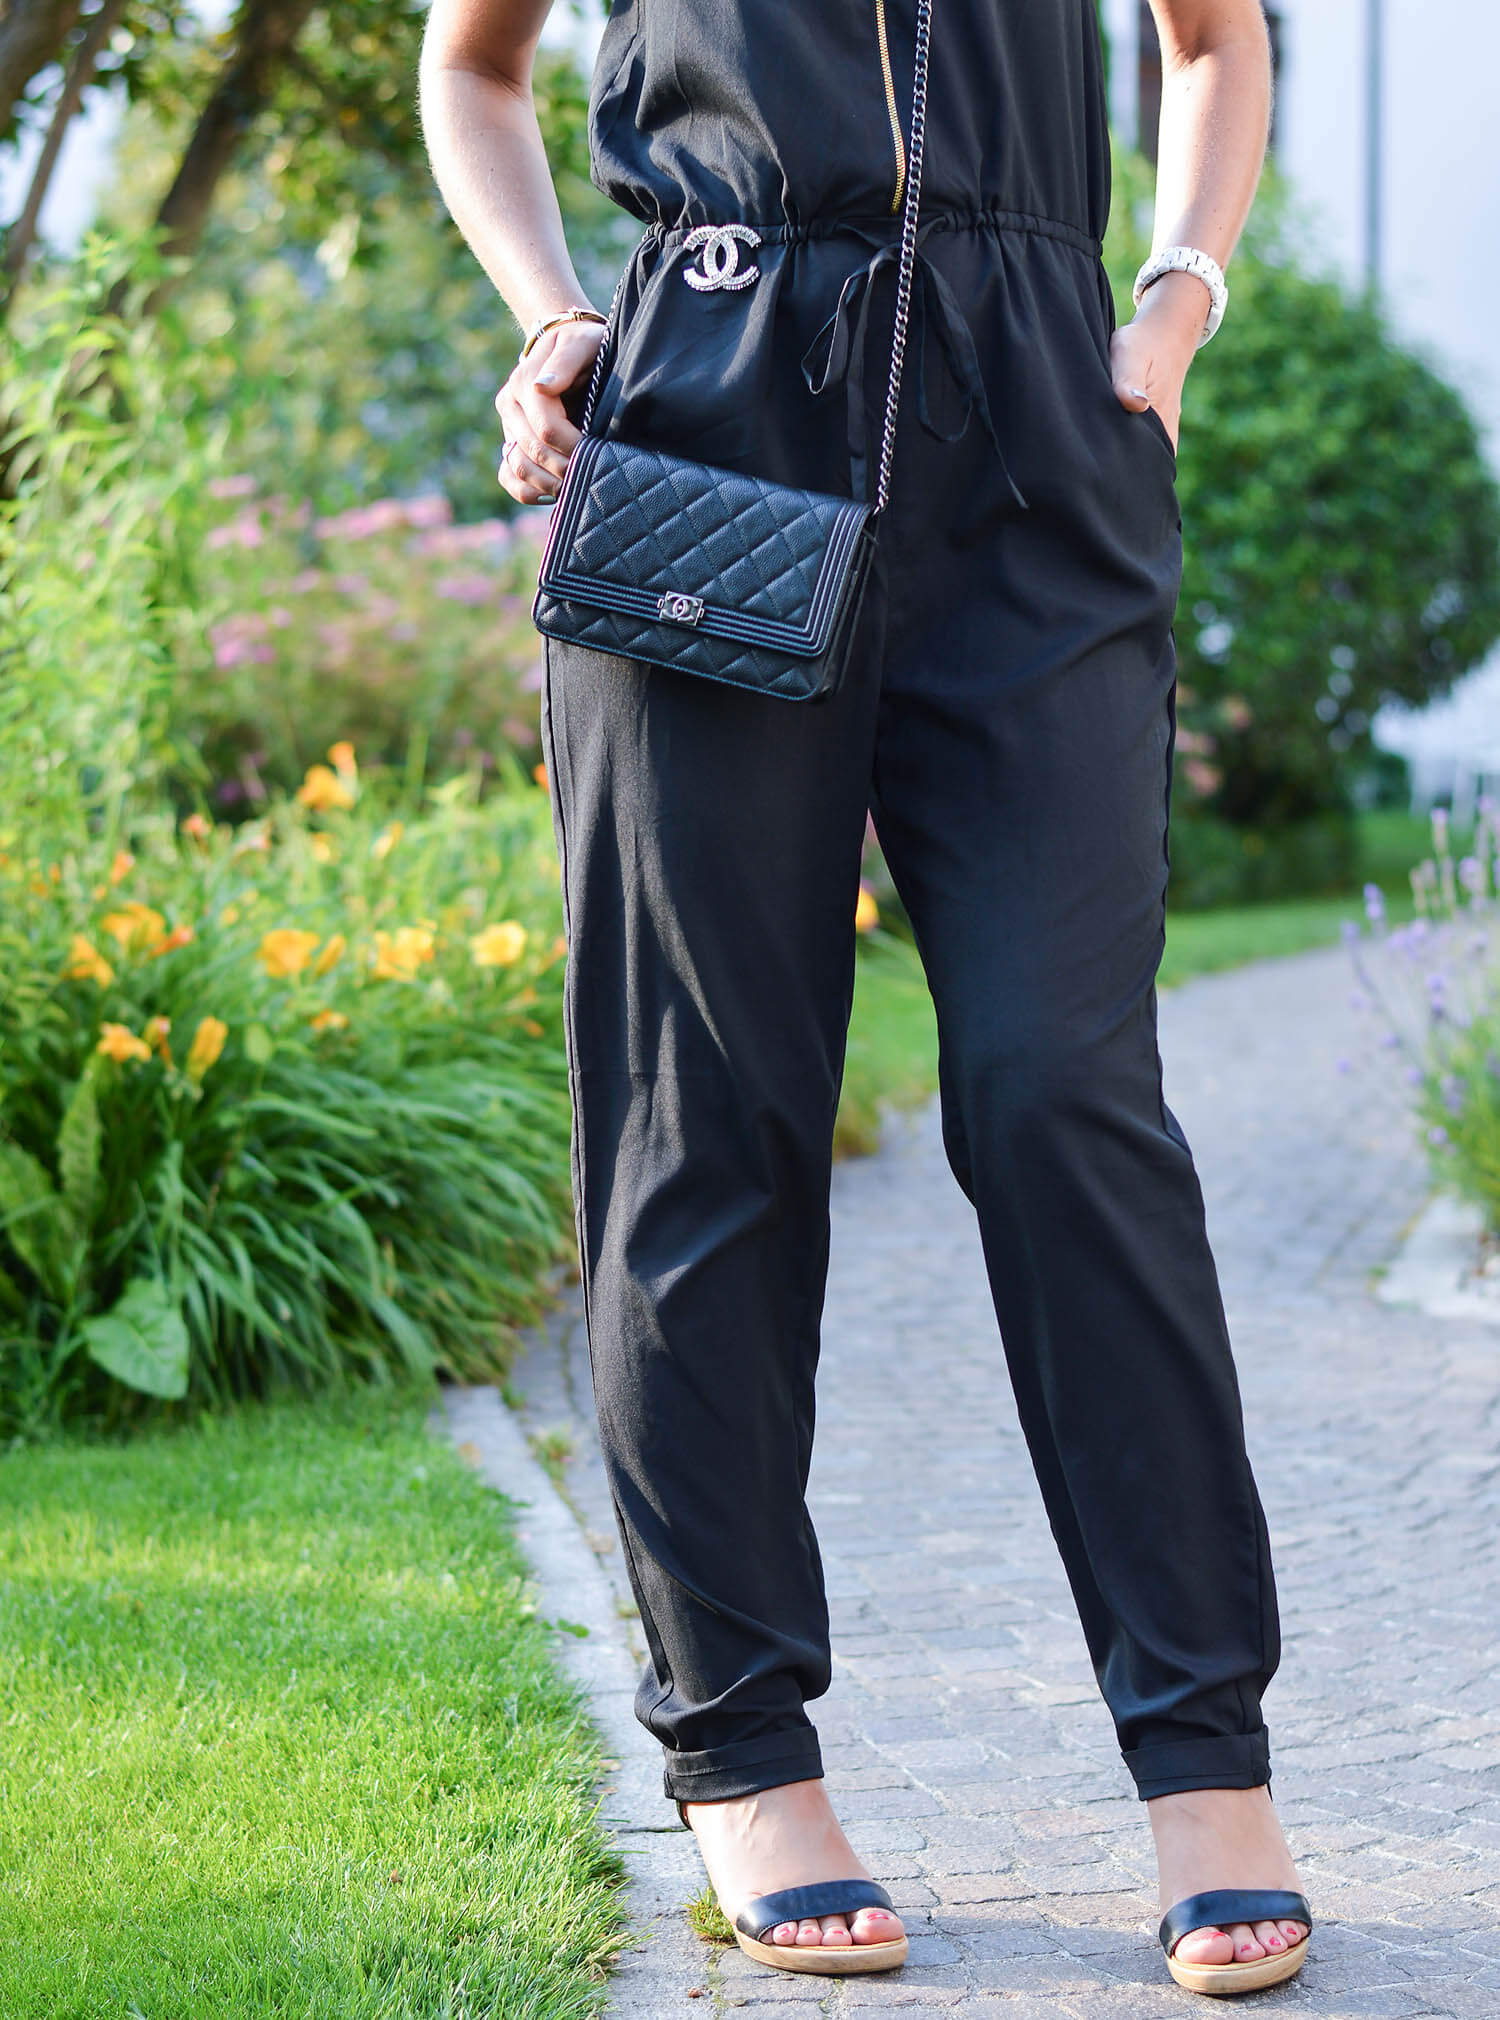 Kationette-fashionblog-nrw-Outfit-Allblack-Jumpsuit-Chanel-South-Tyrol